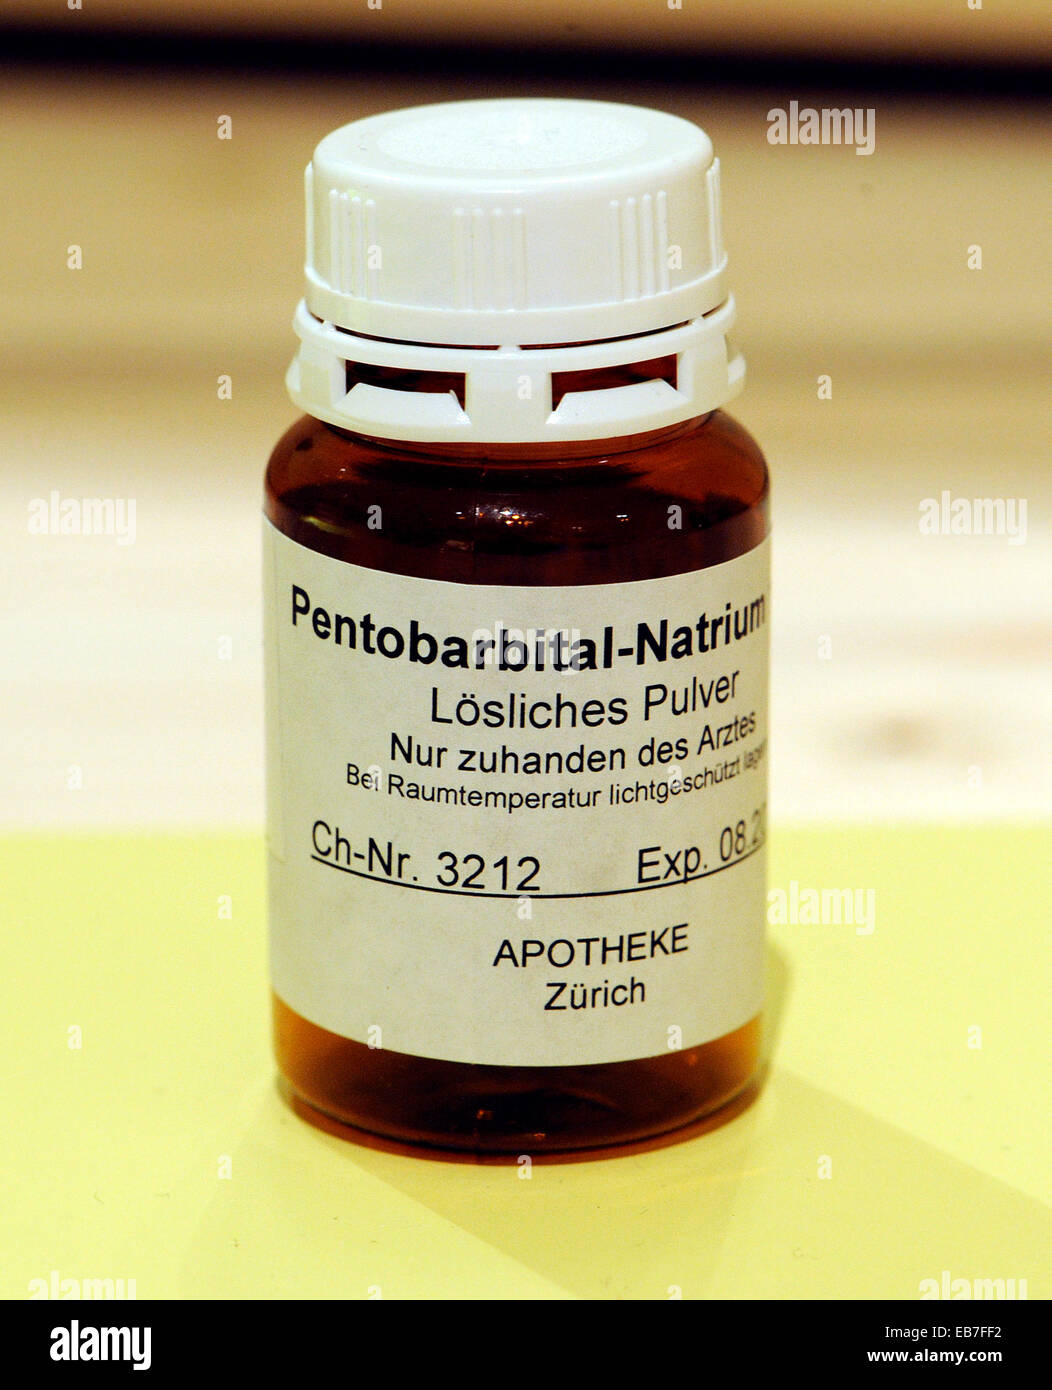 Pentobarbital Stock Photos & Pentobarbital Stock Images - Alamy